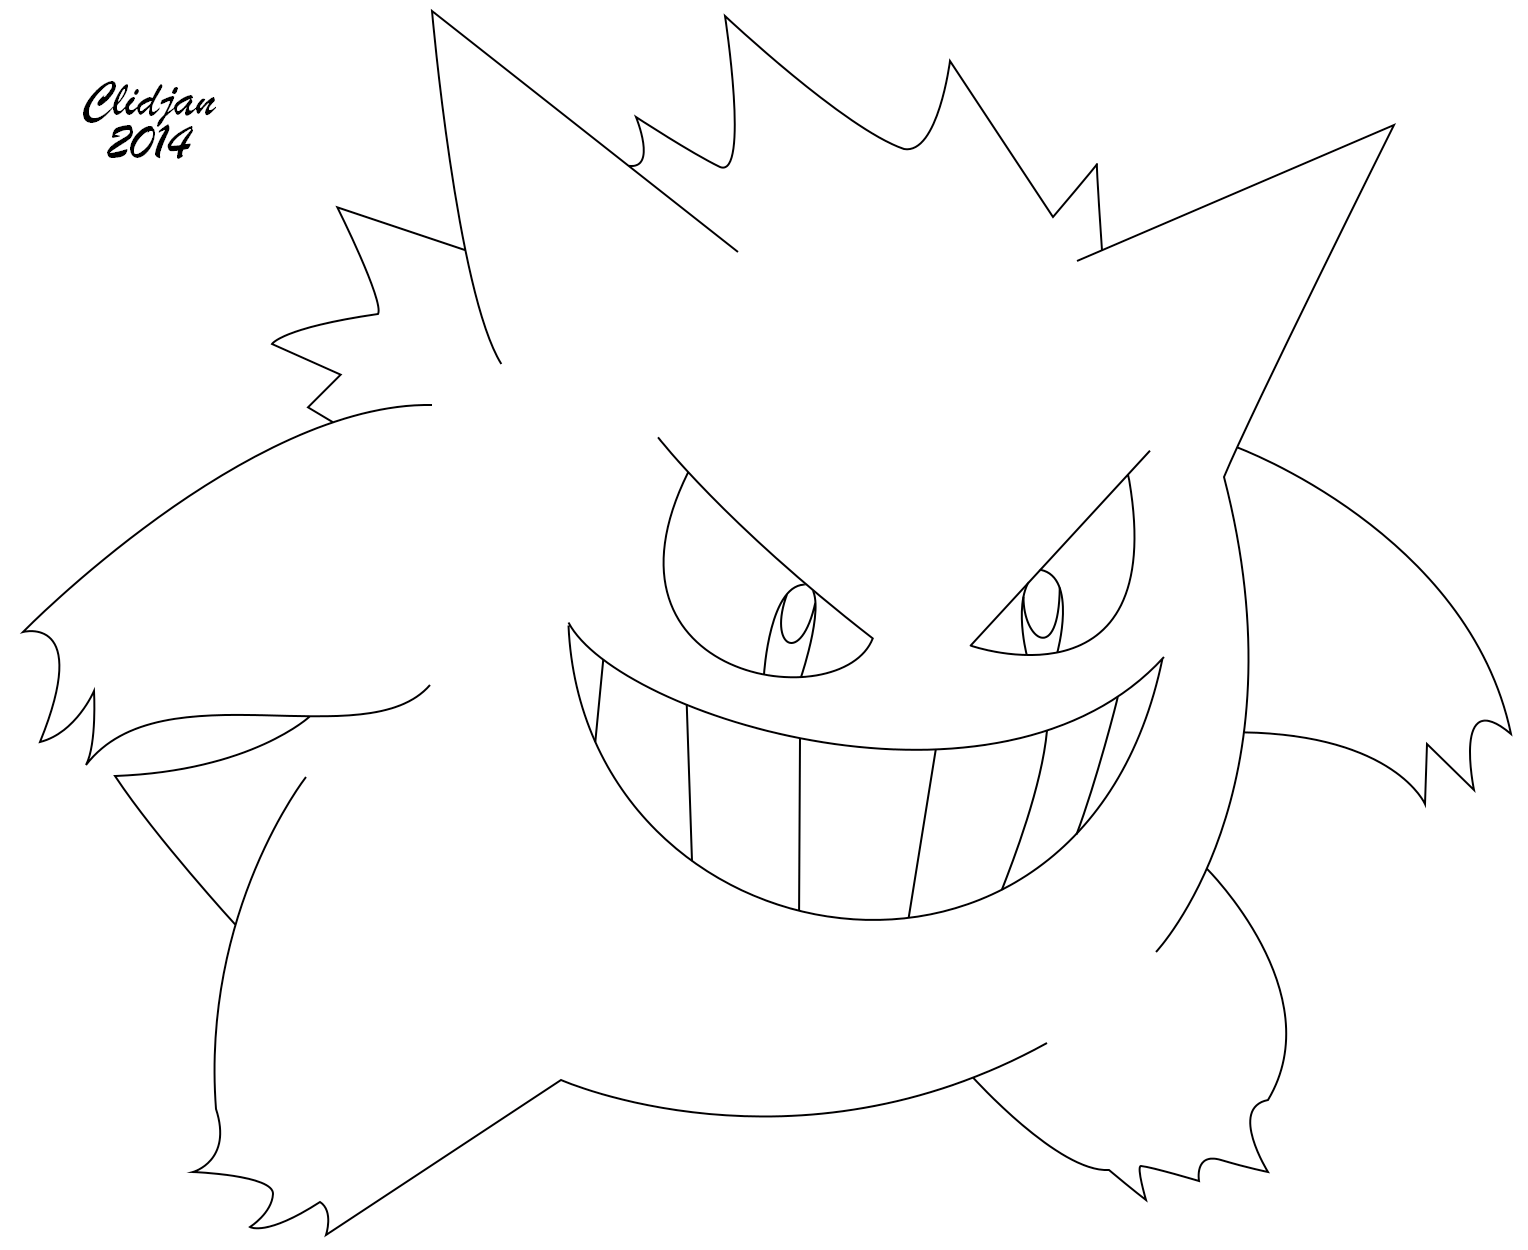 Pokemon coloring pages gengar - Free Gengar Coloring Pages To Print For Kids Download Print And Color